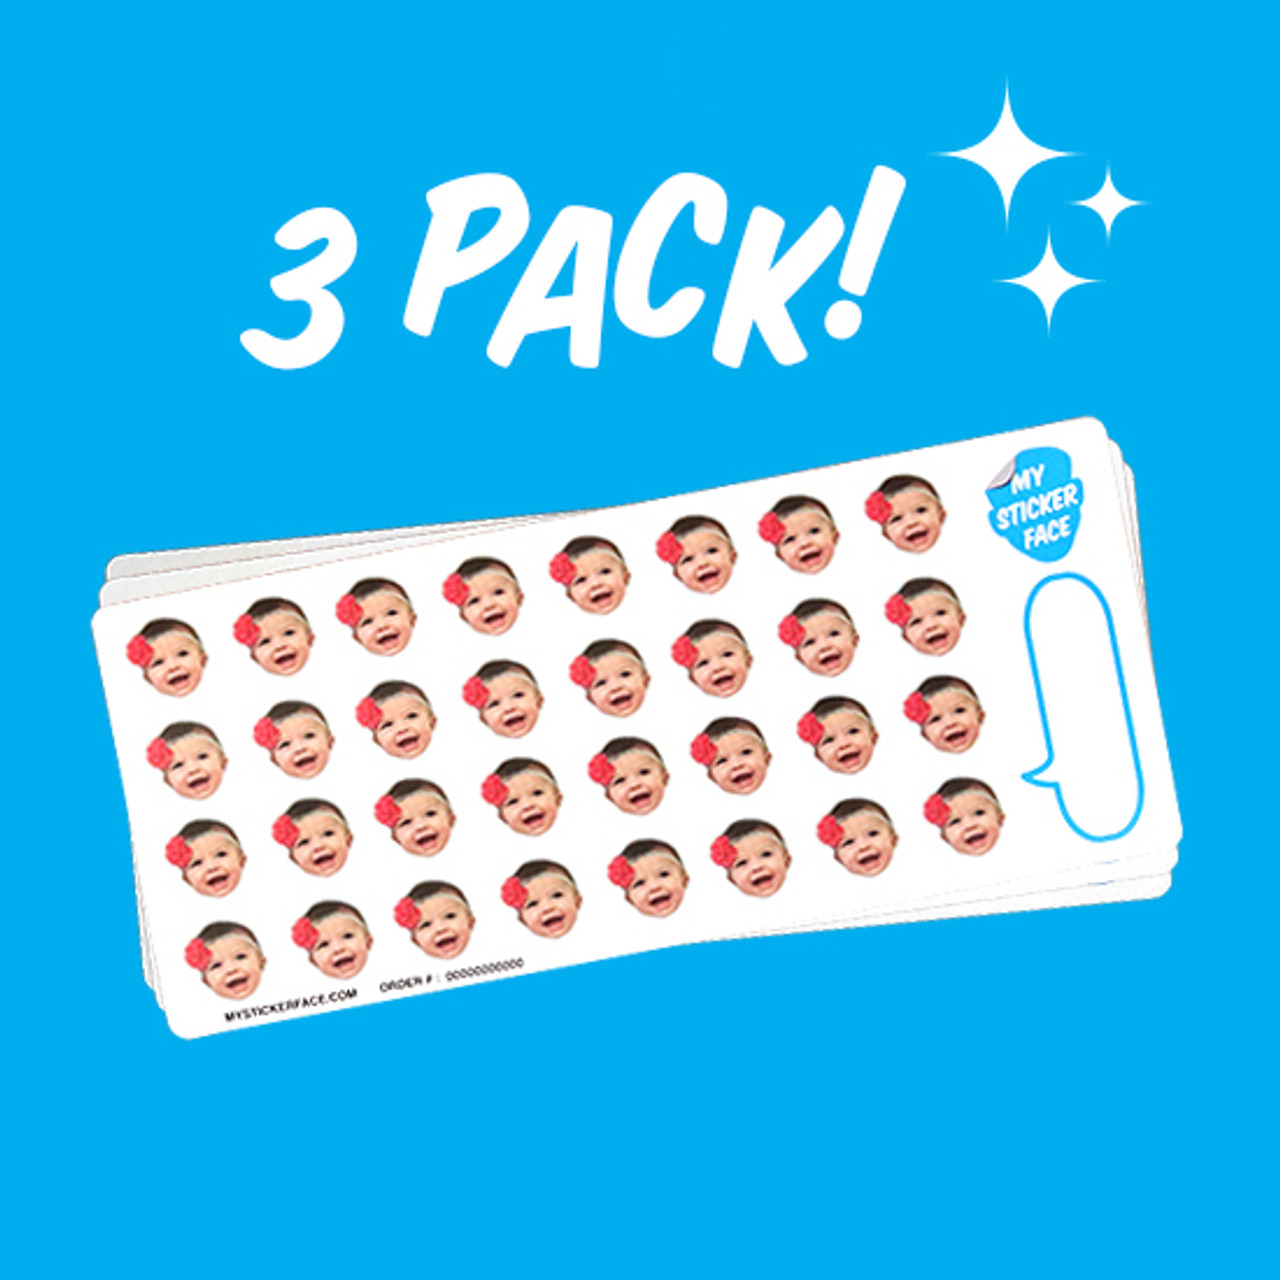 "0.75"" Face Sticker Sheet - 3 Pack"